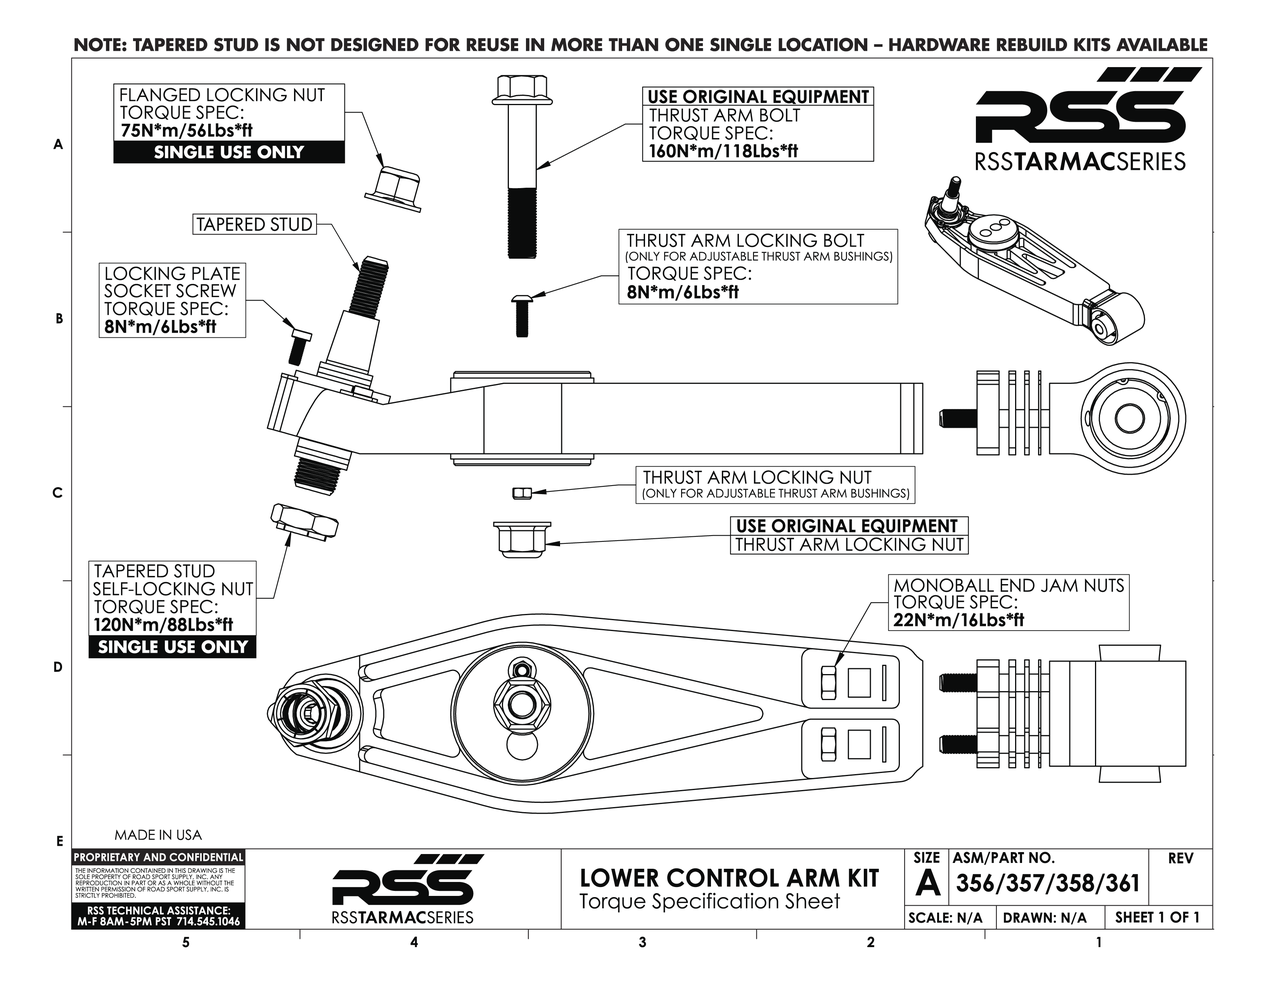 "#356 RSS TARMAC SERIES 2-PIECE COMPLETE LOWER CONTROL ARM KIT - Front Axle (Pair of 2). Fits front axle 986, 996, 997 GT3/GT3RS, and 997 GT2. Includes: Adjustable/Non-Hydraulic Replacement Thrust Arm Bushings, 1mm/2mm/3mm/7mm Shims, Spherical Monoball Ends.   RSS Tarmac Series Motorsport Lower Control Arms are specifically engineered for use on lowered vehicles that have reduced travel struts/dampers If you need assistance in identifying your suspension type please contact us. For specific fitment information refer to the ""Chassis Fitment Guide and Lower Control Arm Fitment Notes"" (See Images Below).  The RSS Tarmac Series – Motorsports Control Arms are designed for the Porsche driver who demands the absolute maximum in precision handling, feedback and control from their chassis. This system has been specially engineered to provide unmatched performance, quality, strength and serviceability. RSS Tarmac Series Control Arms address the performance related shortcomings of the OEM rubber mounted suspension components which were designed to reduce road noise and vibration for everyday street use. The use of rubber injected moldings in mounting components such as the control arms, thrust arms, upper links and toe arms is a compromise in regards to maximum suspension performance. The soft rubber deflects under suspension load which in turn causes unwanted movement (deflection) between the suspension and chassis. Data also shows that temporary changes in spring rates can occur as well. These movements and changes result in unnecessary corrections and inputs from the driver.  FEATURES & BENEFITS • Completely Serviceable: For the extreme, repetitive track day enthusiast or racer, our high strength steel alloy spherical bearings (with a friction reducing, longevity increasing Teflon liner) can be replaced unlike the motorsports arms, in which case a new set of arms will need to be purchased if the spherical bearings are worn out. • Adjustable Suspension Geometry: Adjust dynamic camber values and roll center heights with our unique zinc plated steel bushings. • Solid Monoball Control Arm Ends: Offers better handling and a more responsive suspension over the factory one-piece rubber injected control arm by eliminating bushing deflection (also uses the same high strength steel alloy spherical bearing found in our control arm monoball kit). • 6061 Aerospace Grade Billet Aluminum Construction: Allows for a more uniform molecular structure at every point of the arm over the cast components providing a more durable and inherently stronger part. Manufacturing from billet aluminum rather than casting results in fewer impurities in the metal. • Anodized Aluminum Surfaces and Zinc Plated Steel Parts: Allows for better corrosion resistance against the elements. AVAILABLE FOR MOST 996, 986, 981, 982, 987 & 997 MODELS INCLUDING TURBO, GT2, GT2RS, GT3 & GT3RS  RSS TARMAC SERIES Motorsports Suspension Kits have been winning championships and races in various forms of motorsport (Road Racing to Rally) around the world. RSS is the suspension of choice of professional race teams, tuners, track day junkies, and driving enthusiasts around the world.  - 2015 PIRELLI WORLD CHALLENGE TC CHAMPIONS  - 2014 FIA SPANISH RALLY TARMAC CHAMPIONS  - 2013 ROLEX GRAND-AM GX CHAMPIONS  RSS High Performance Tarmac Series Suspension Components are designed, engineered and manufactured on location here in the USA."